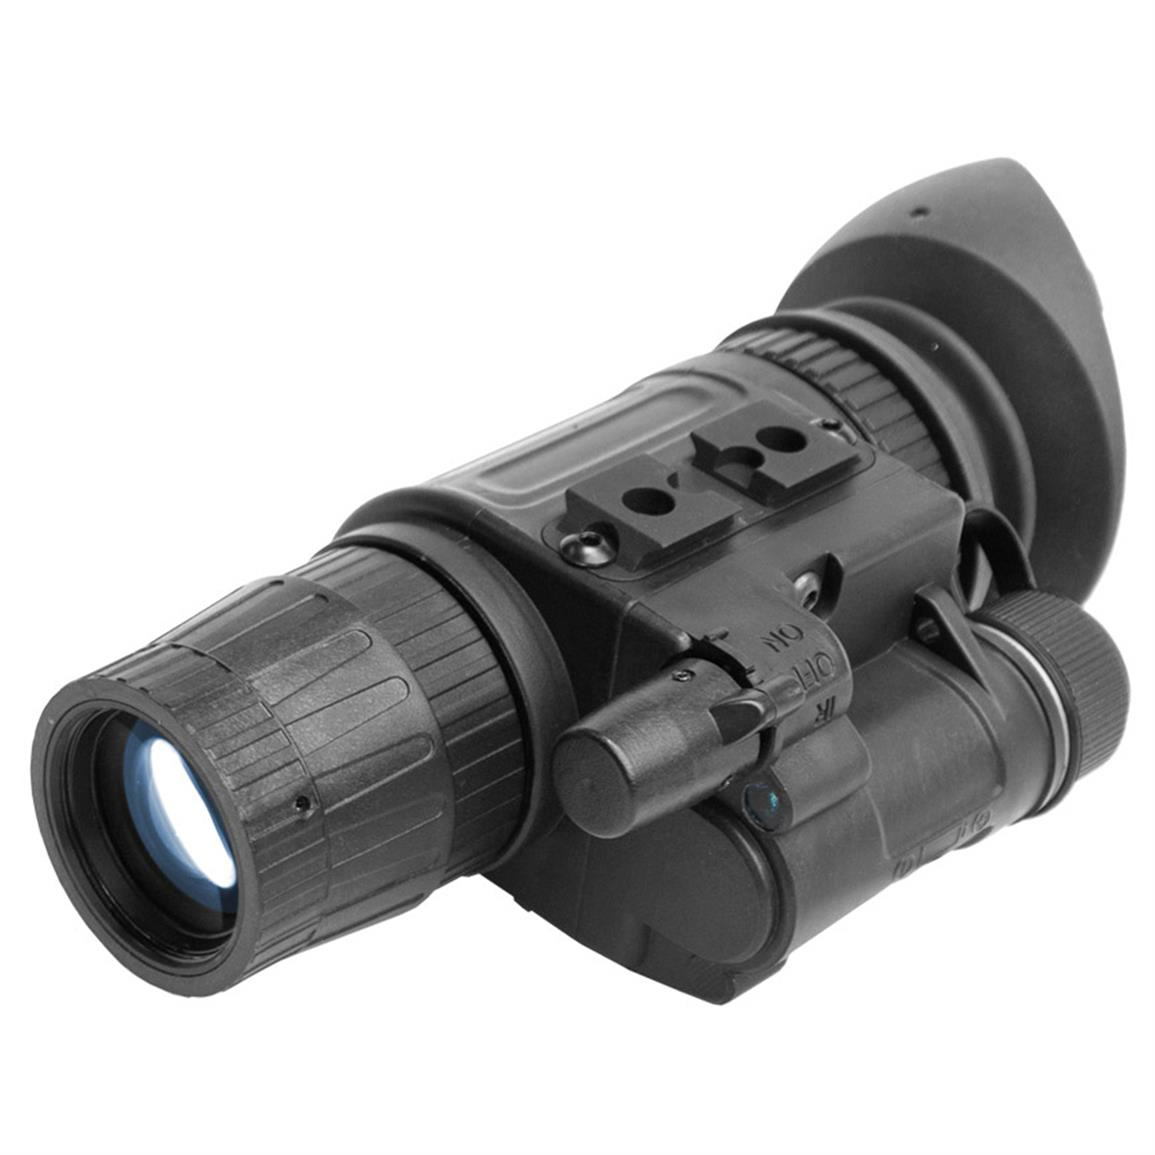 ATN NVM-14-4 Night Vision Monocular